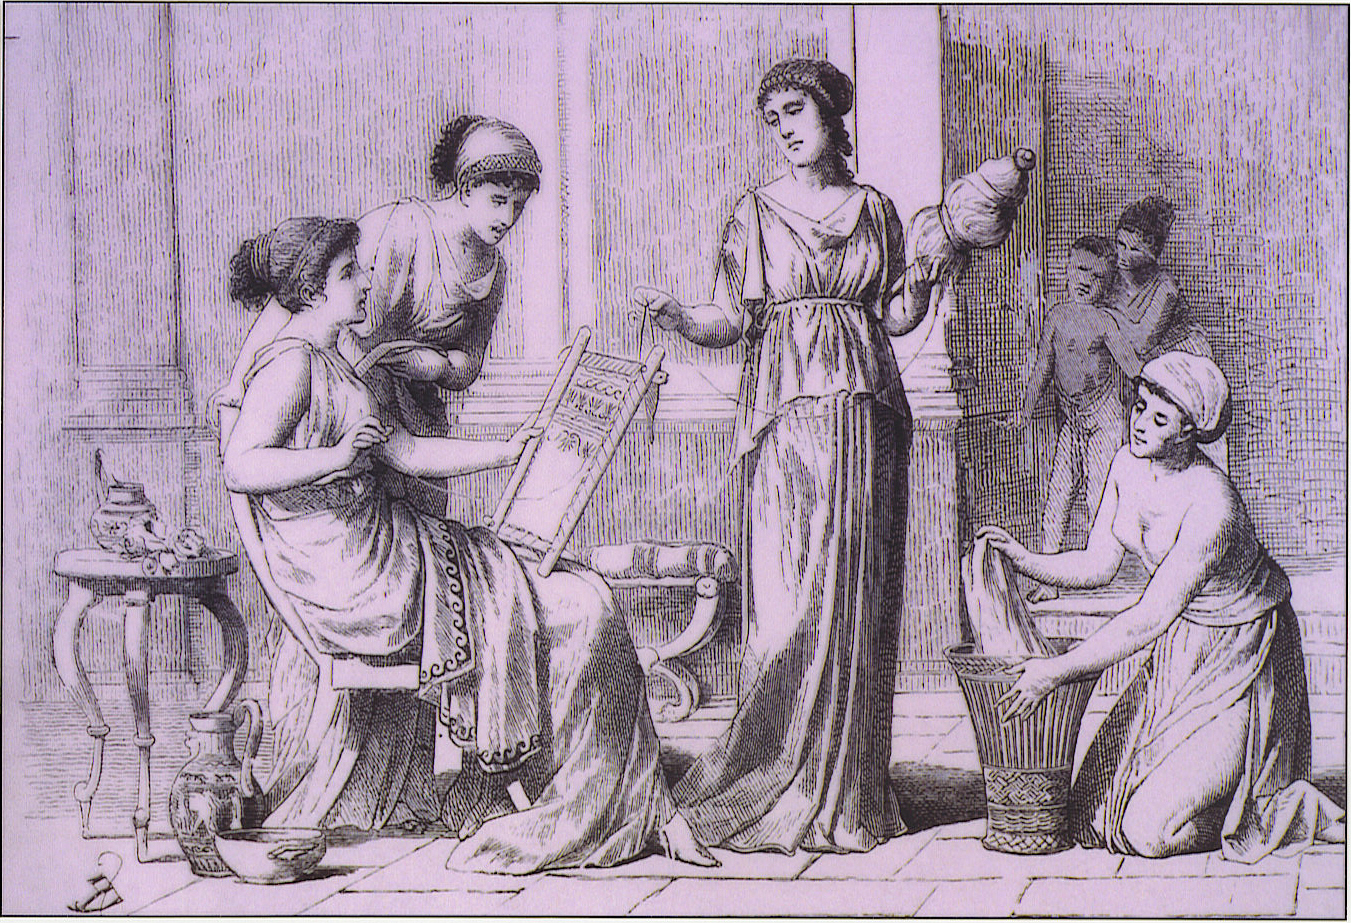 women of ancient greece essay The women of greece: a transition from ancient power to classical subservience for the most part, women in todays society hold a position equal to that of a man.